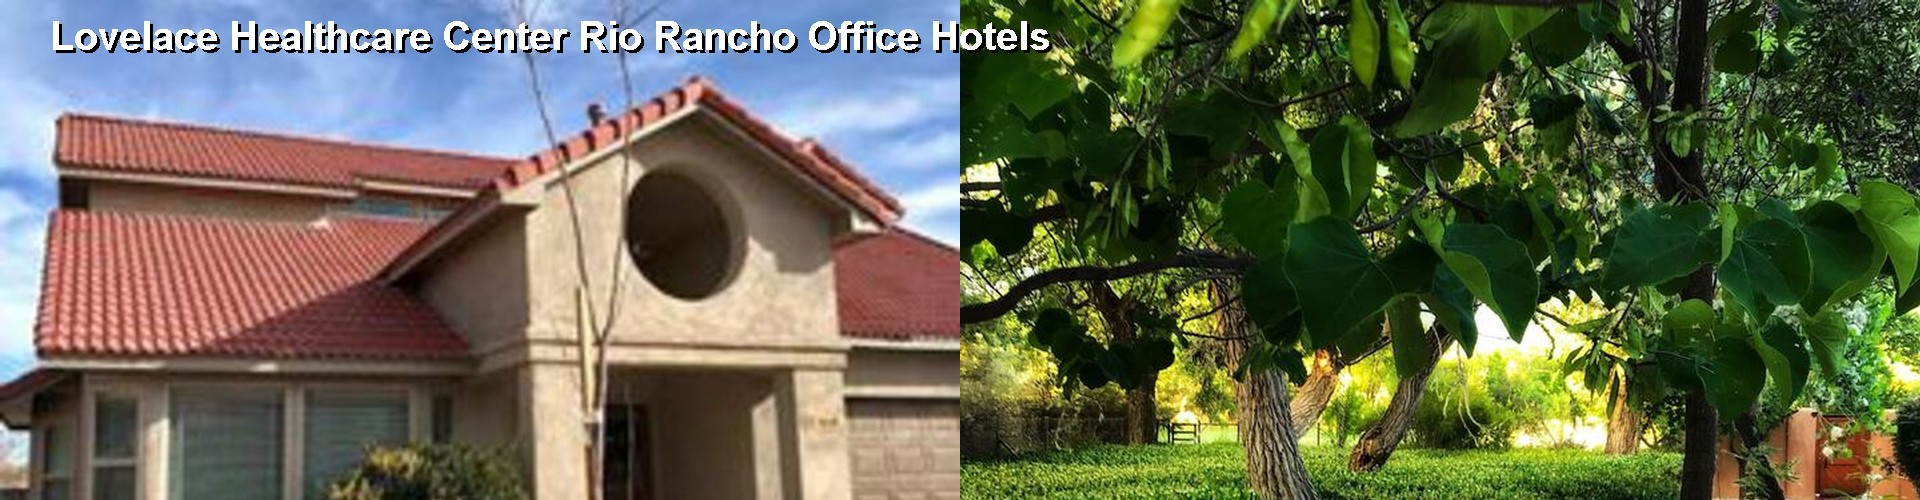 5 Best Hotels near Lovelace Healthcare Center Rio Rancho Office